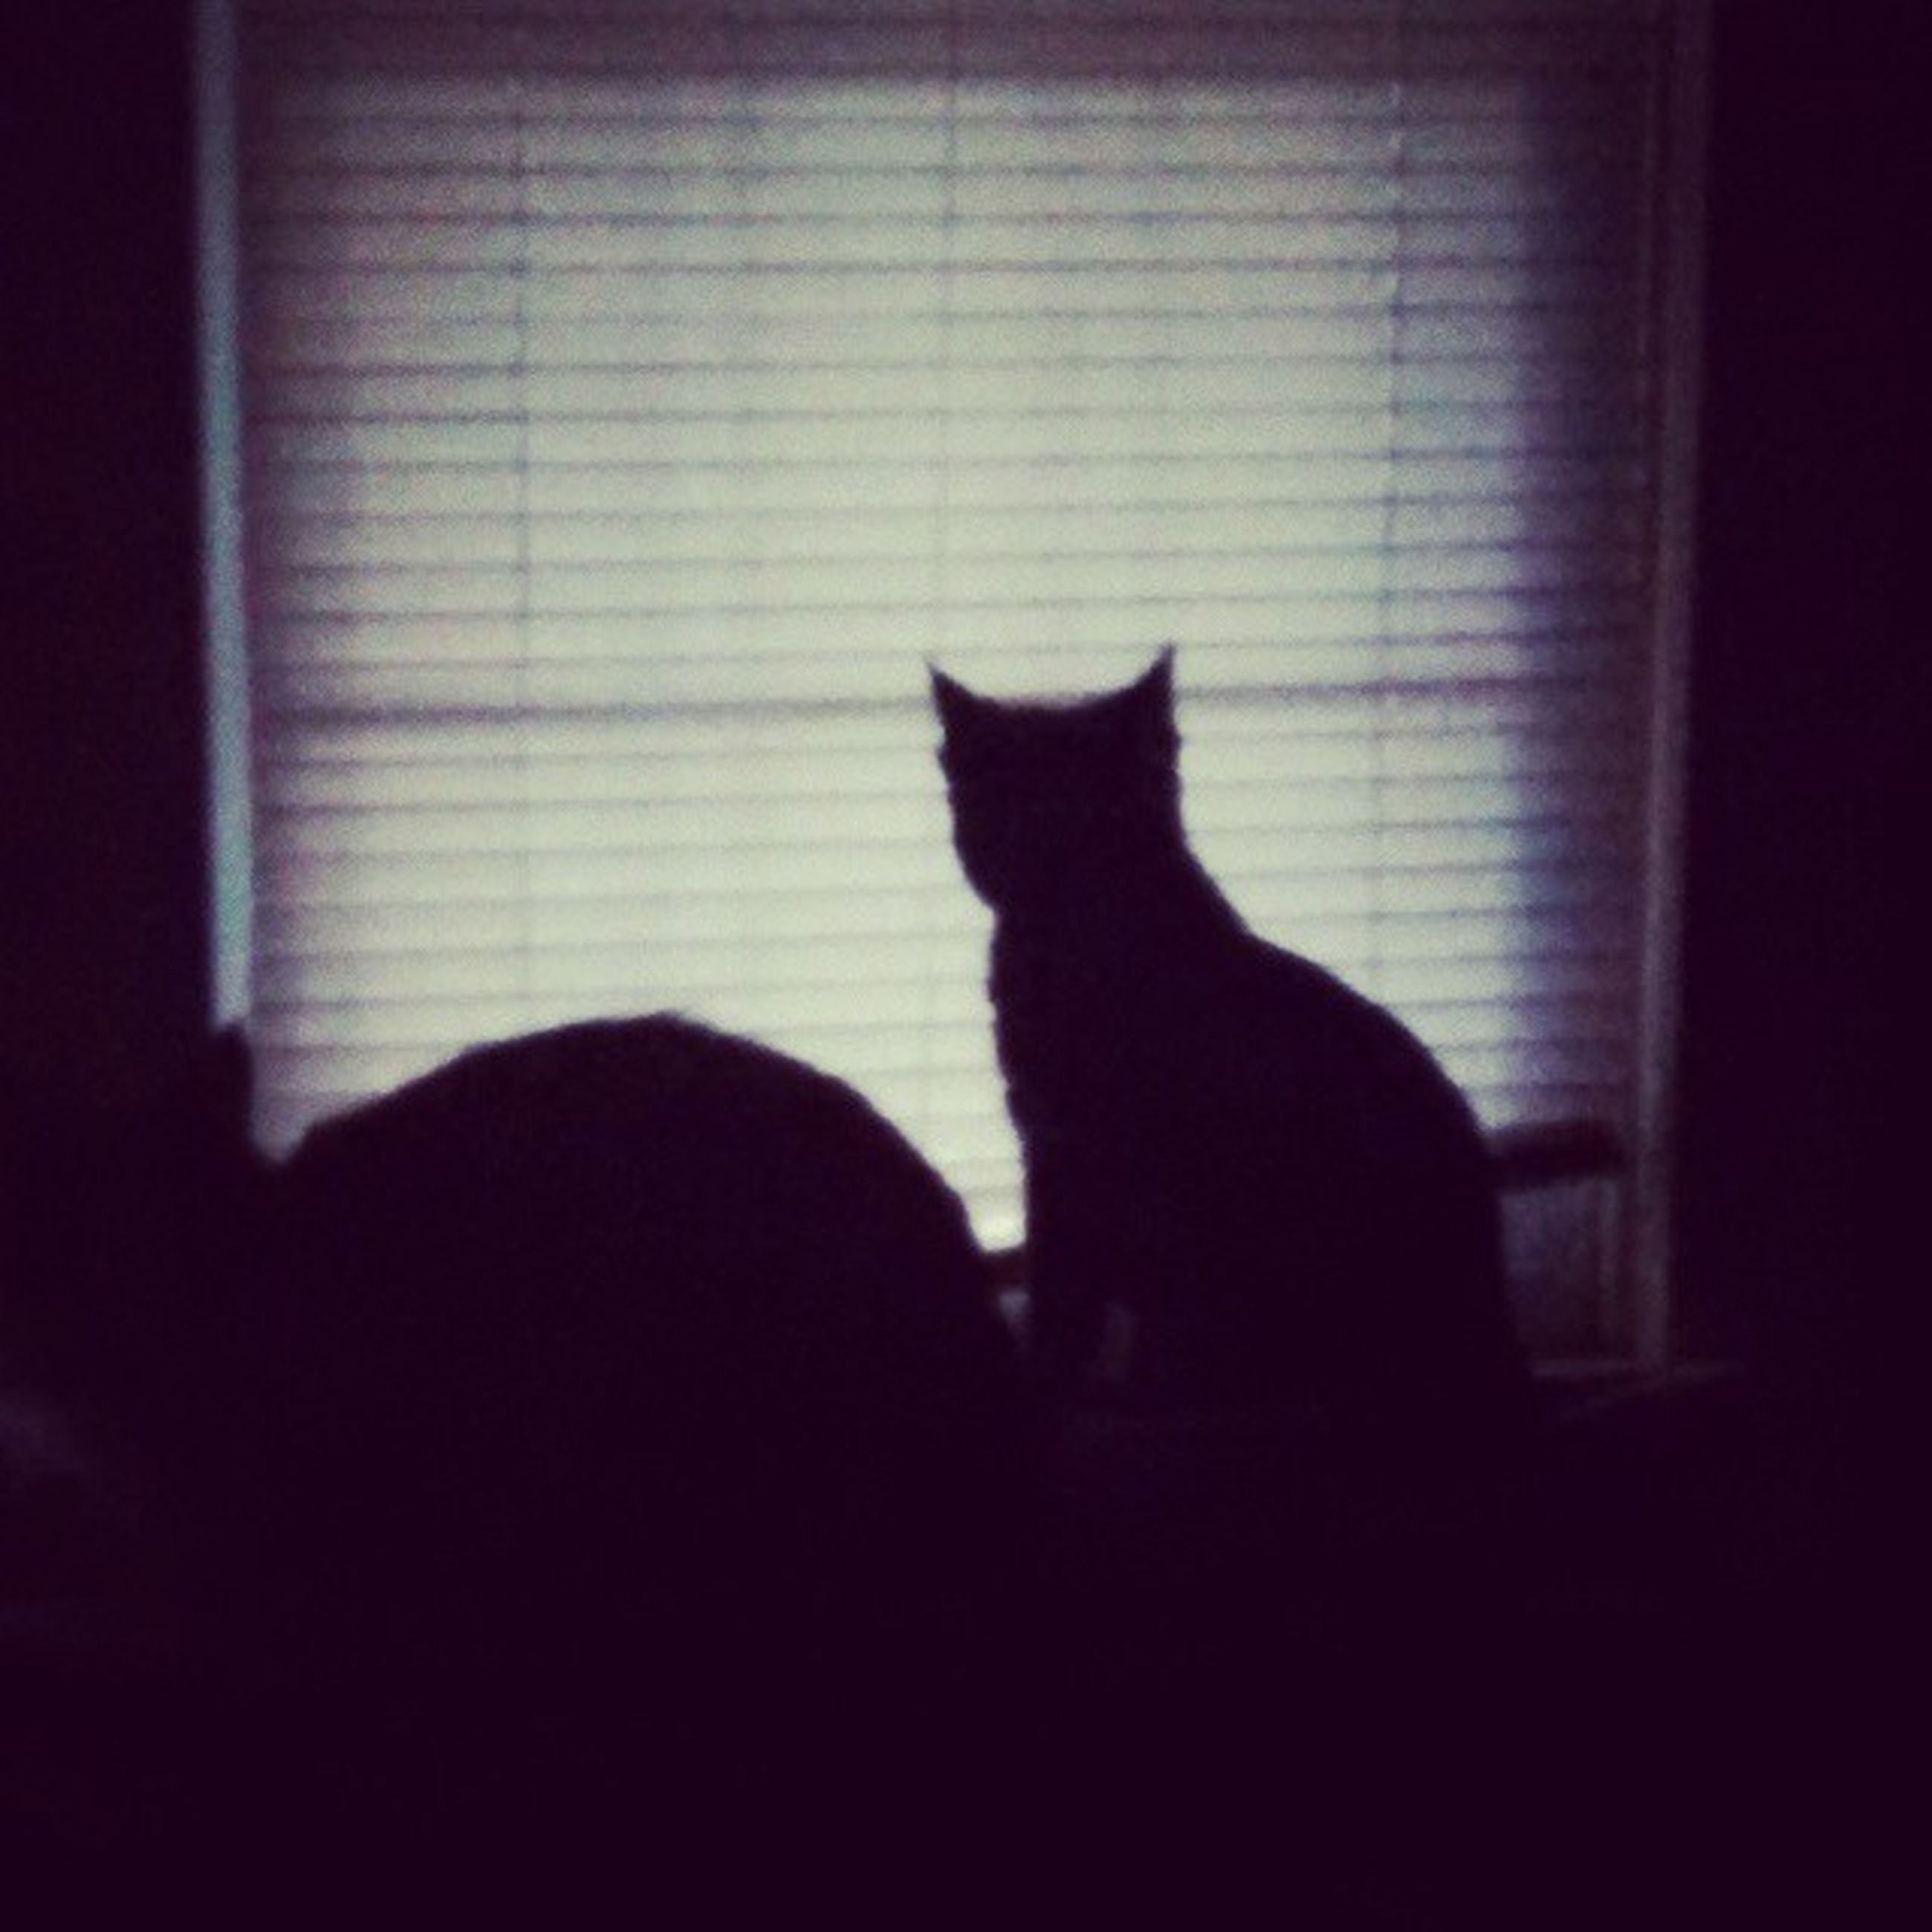 pets, domestic animals, domestic cat, indoors, cat, animal themes, mammal, one animal, feline, window, silhouette, home interior, sitting, relaxation, black color, dark, no people, whisker, glass - material, curtain